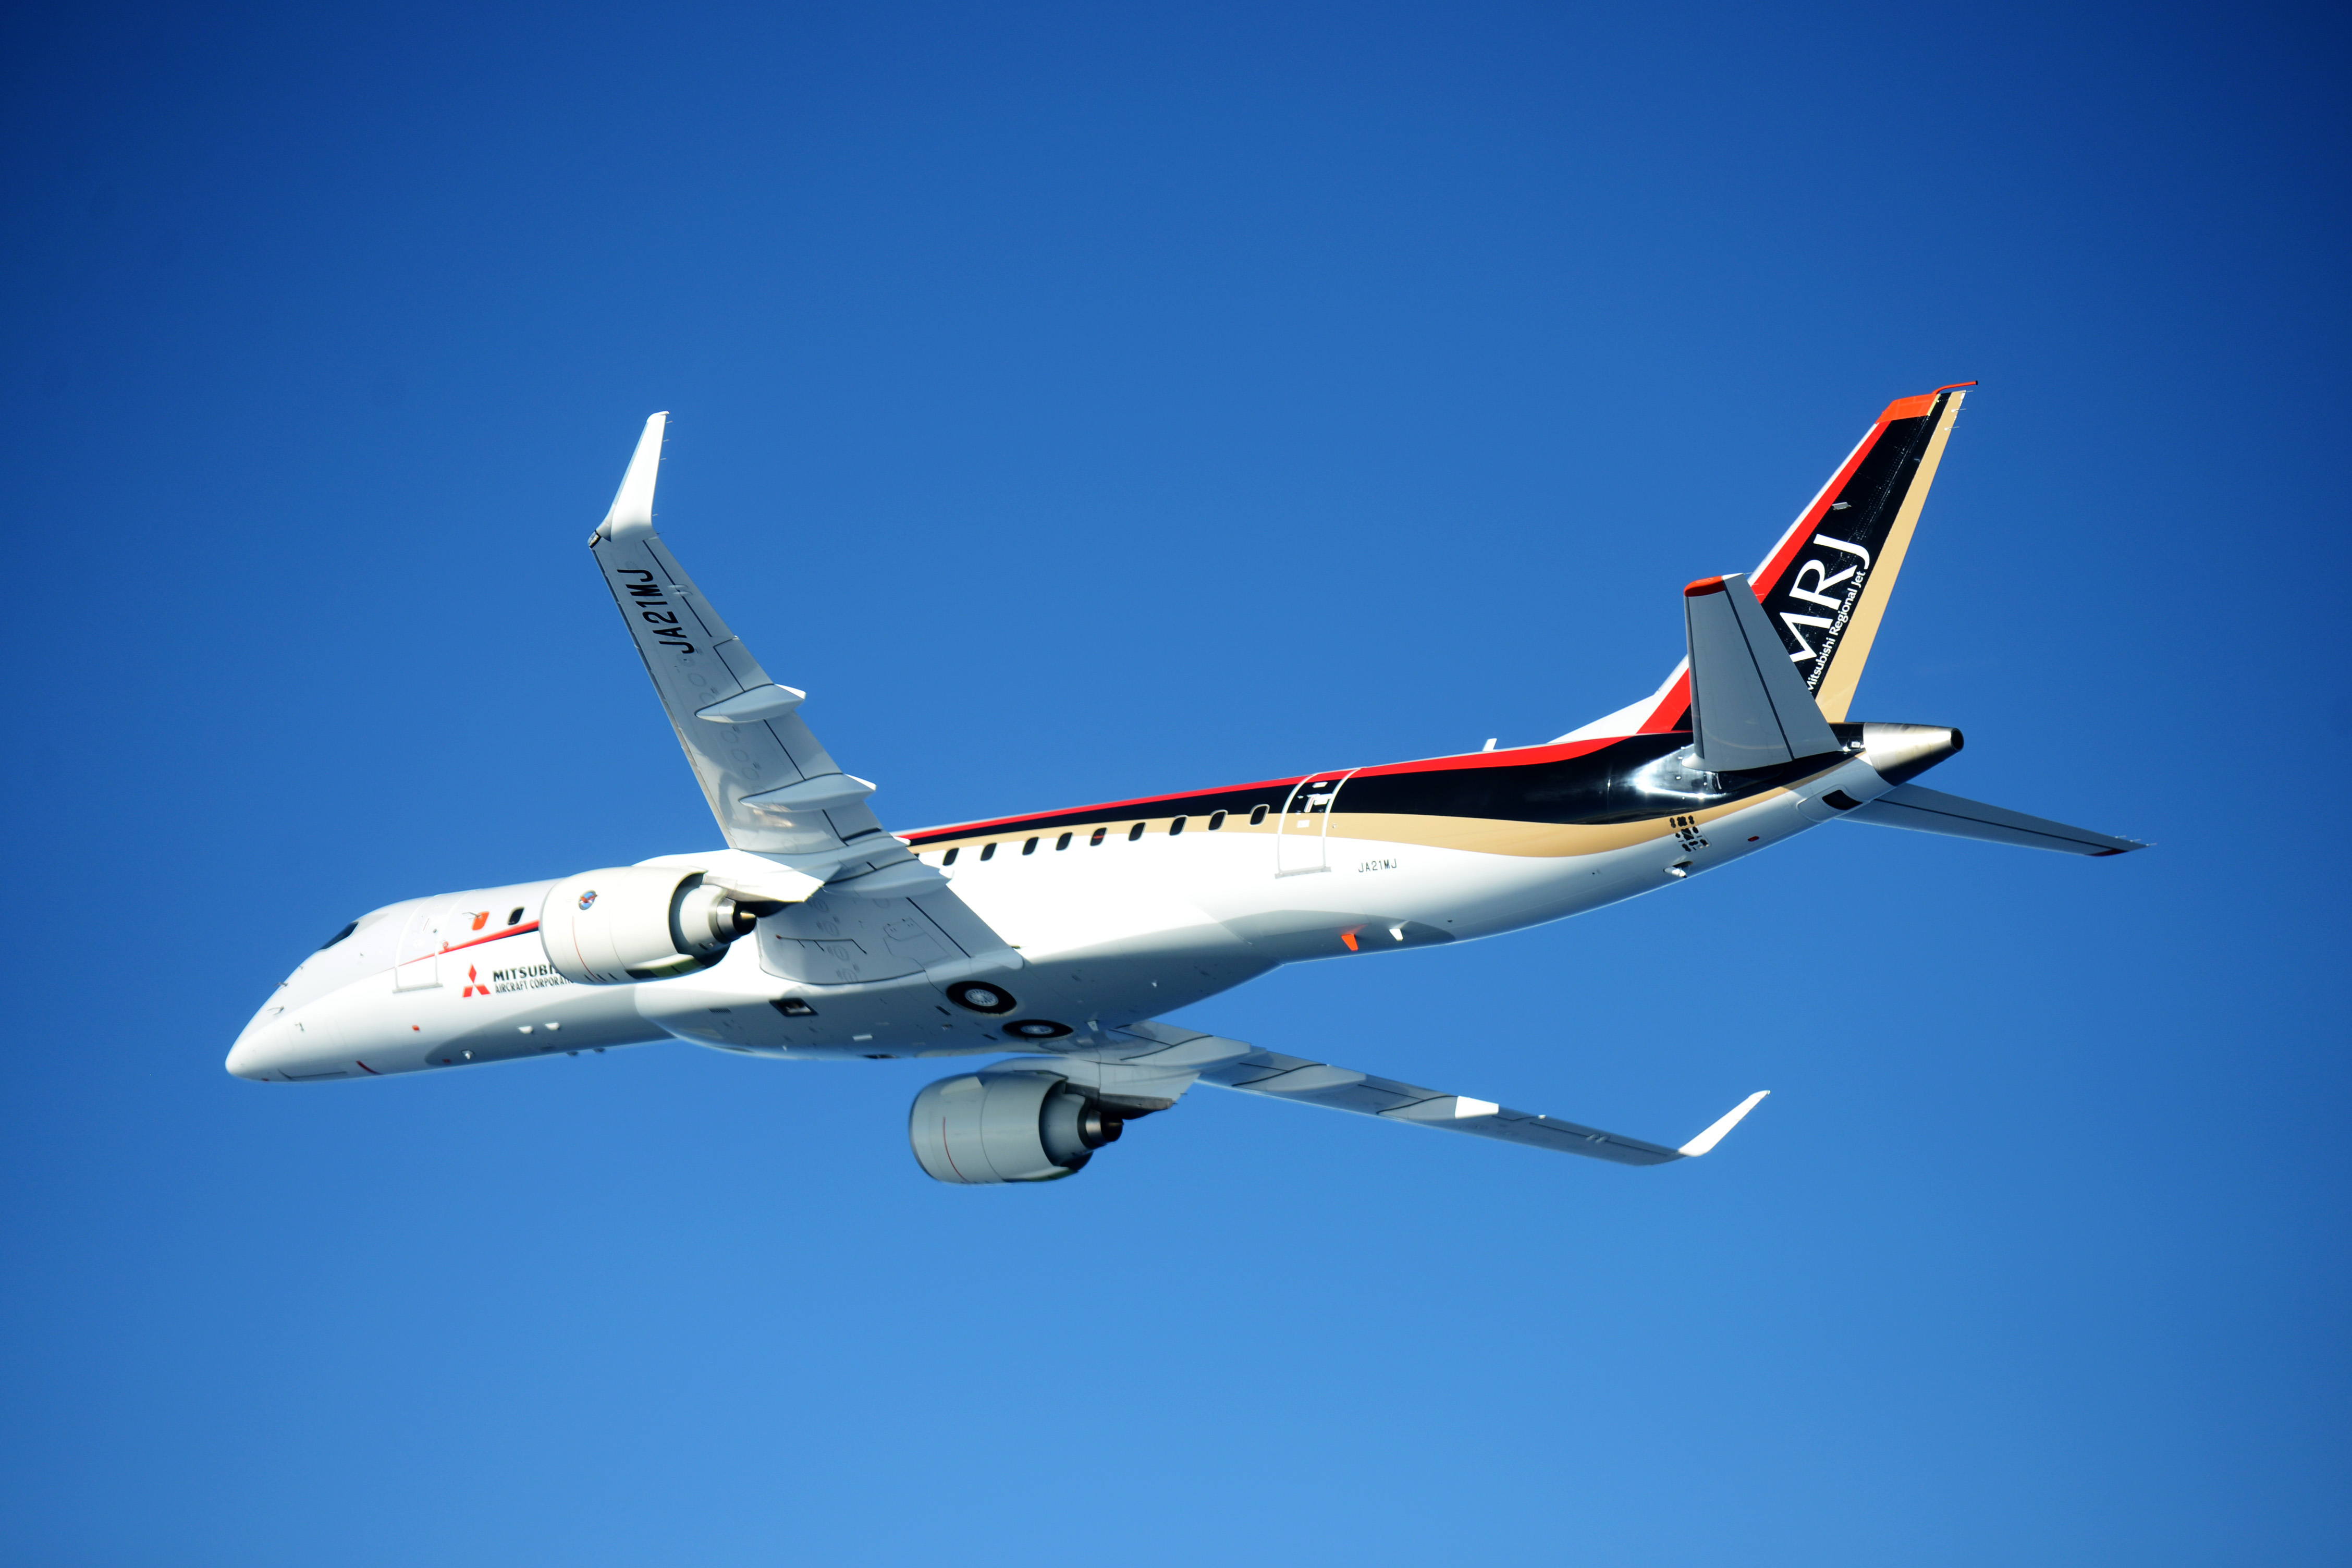 20151127_MRJ_3rd Flight Test_1